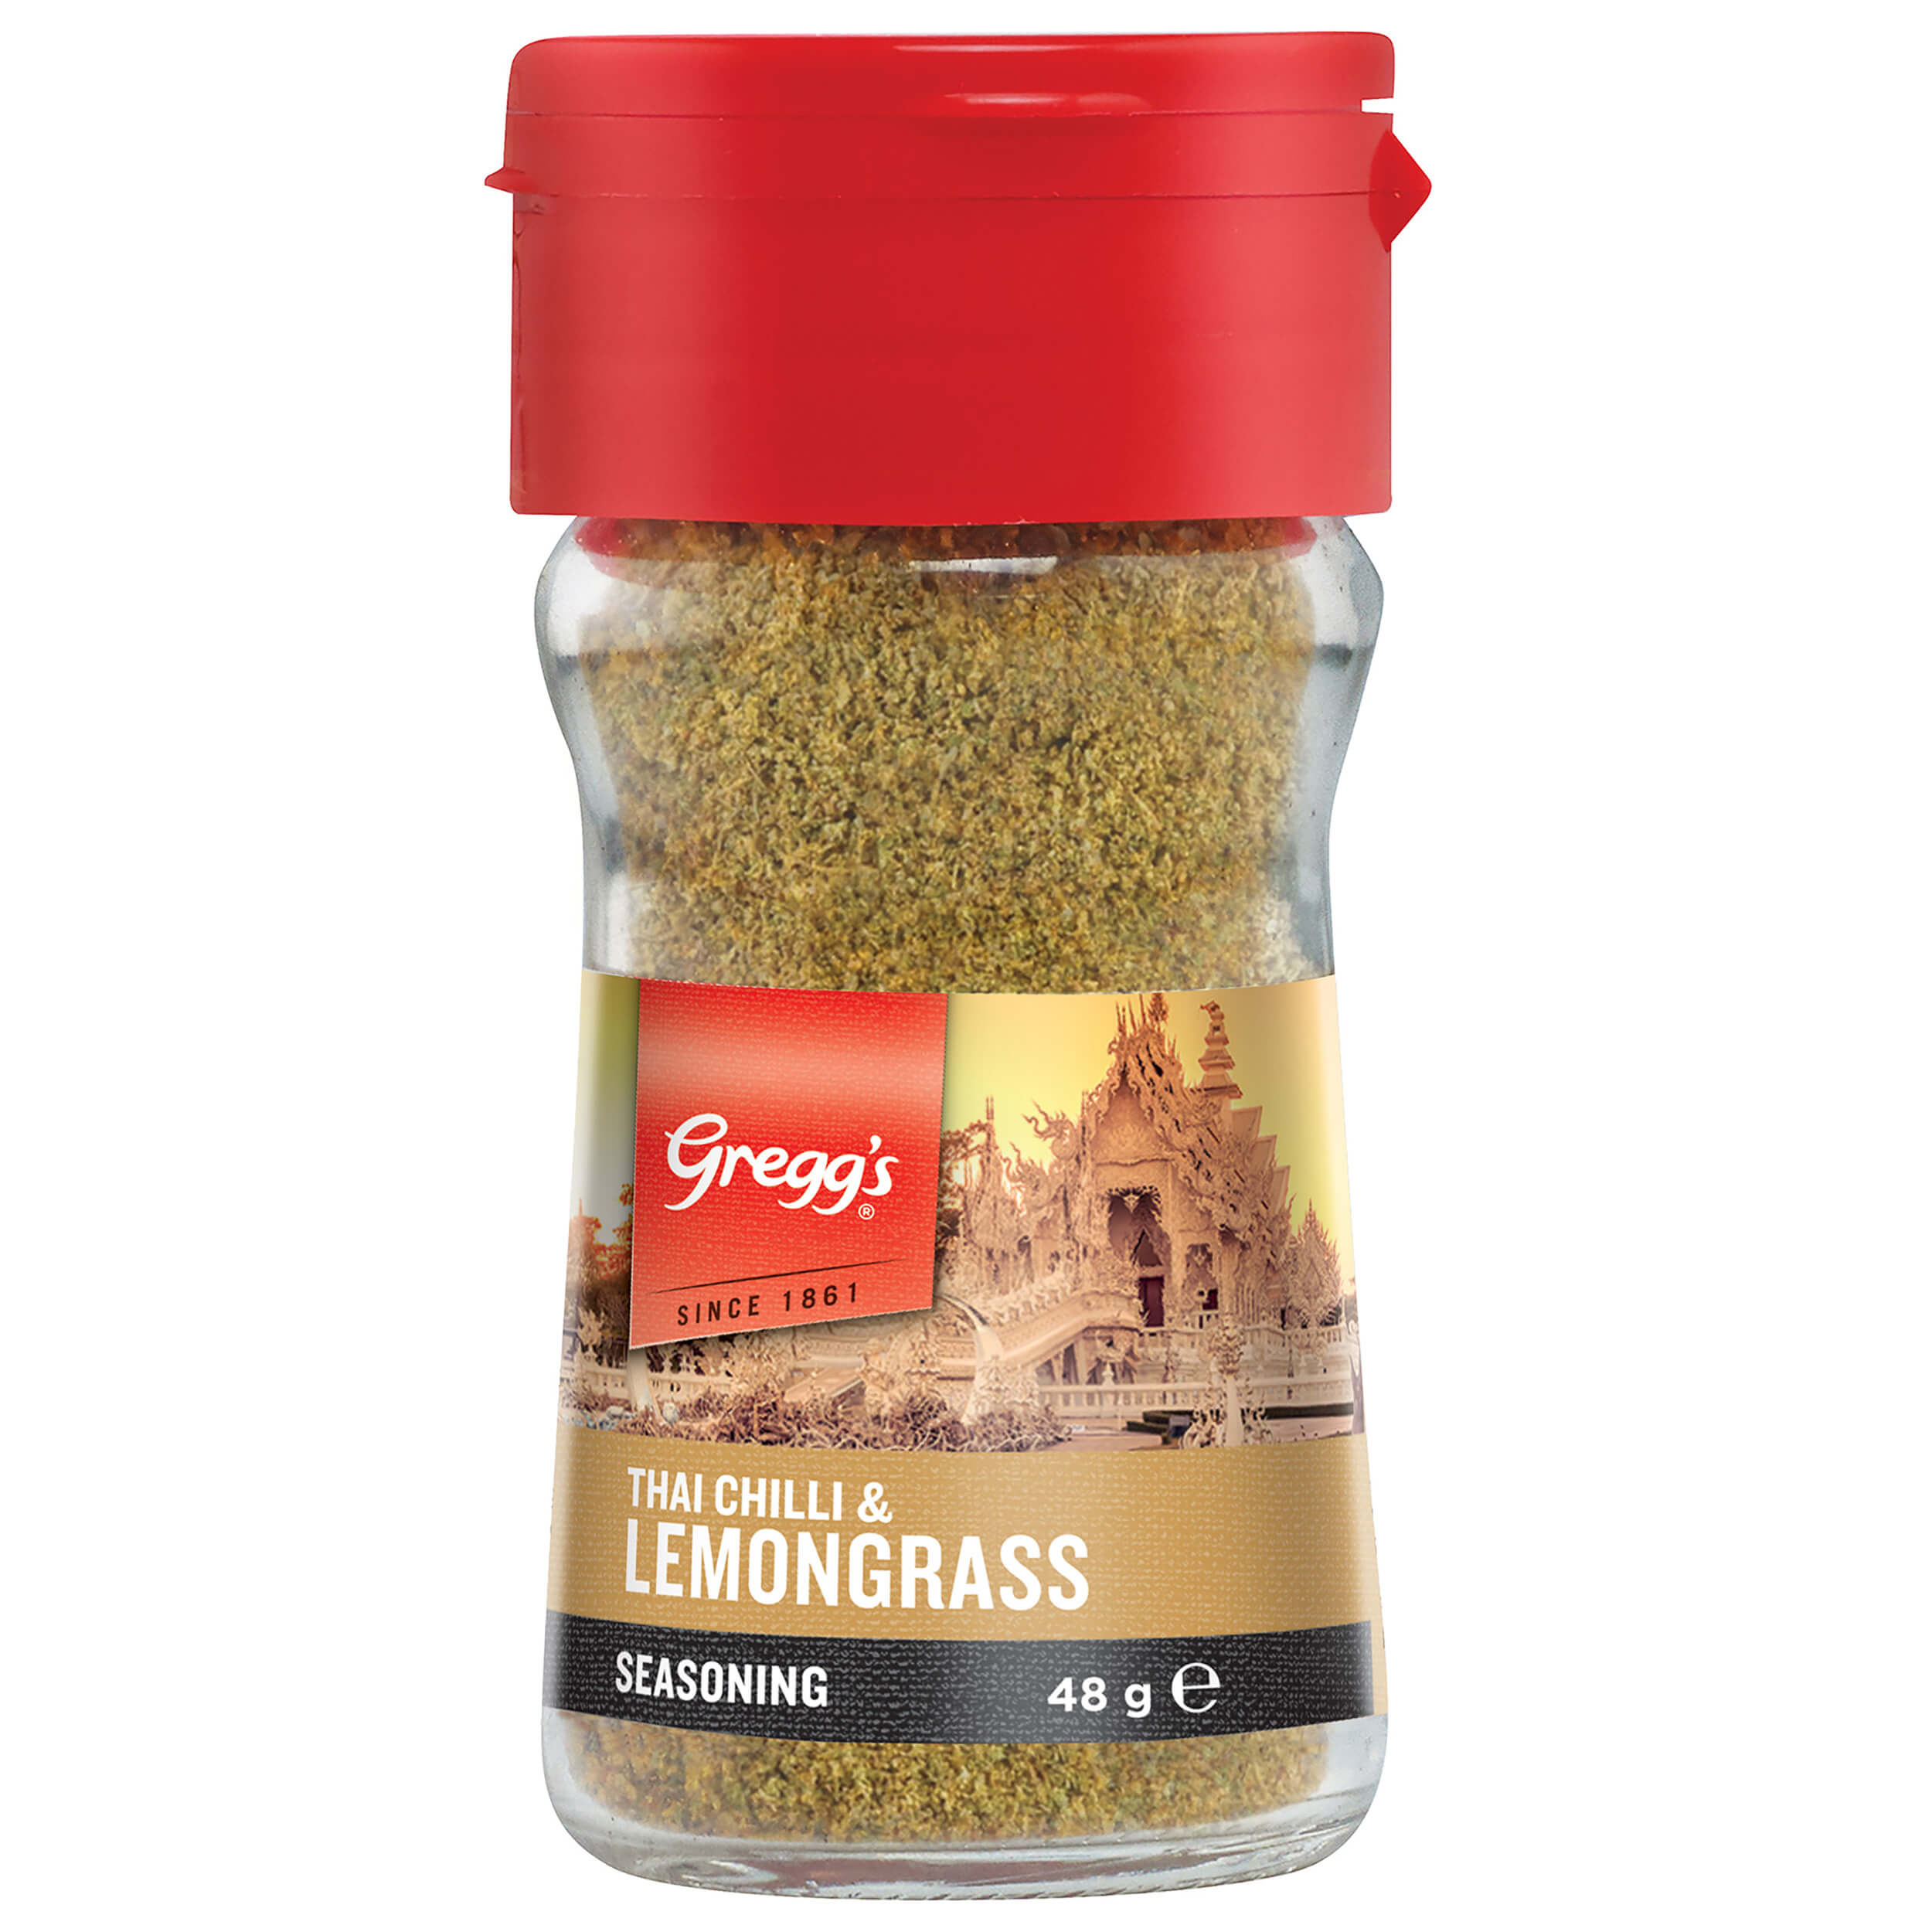 Thai Lemongrass image